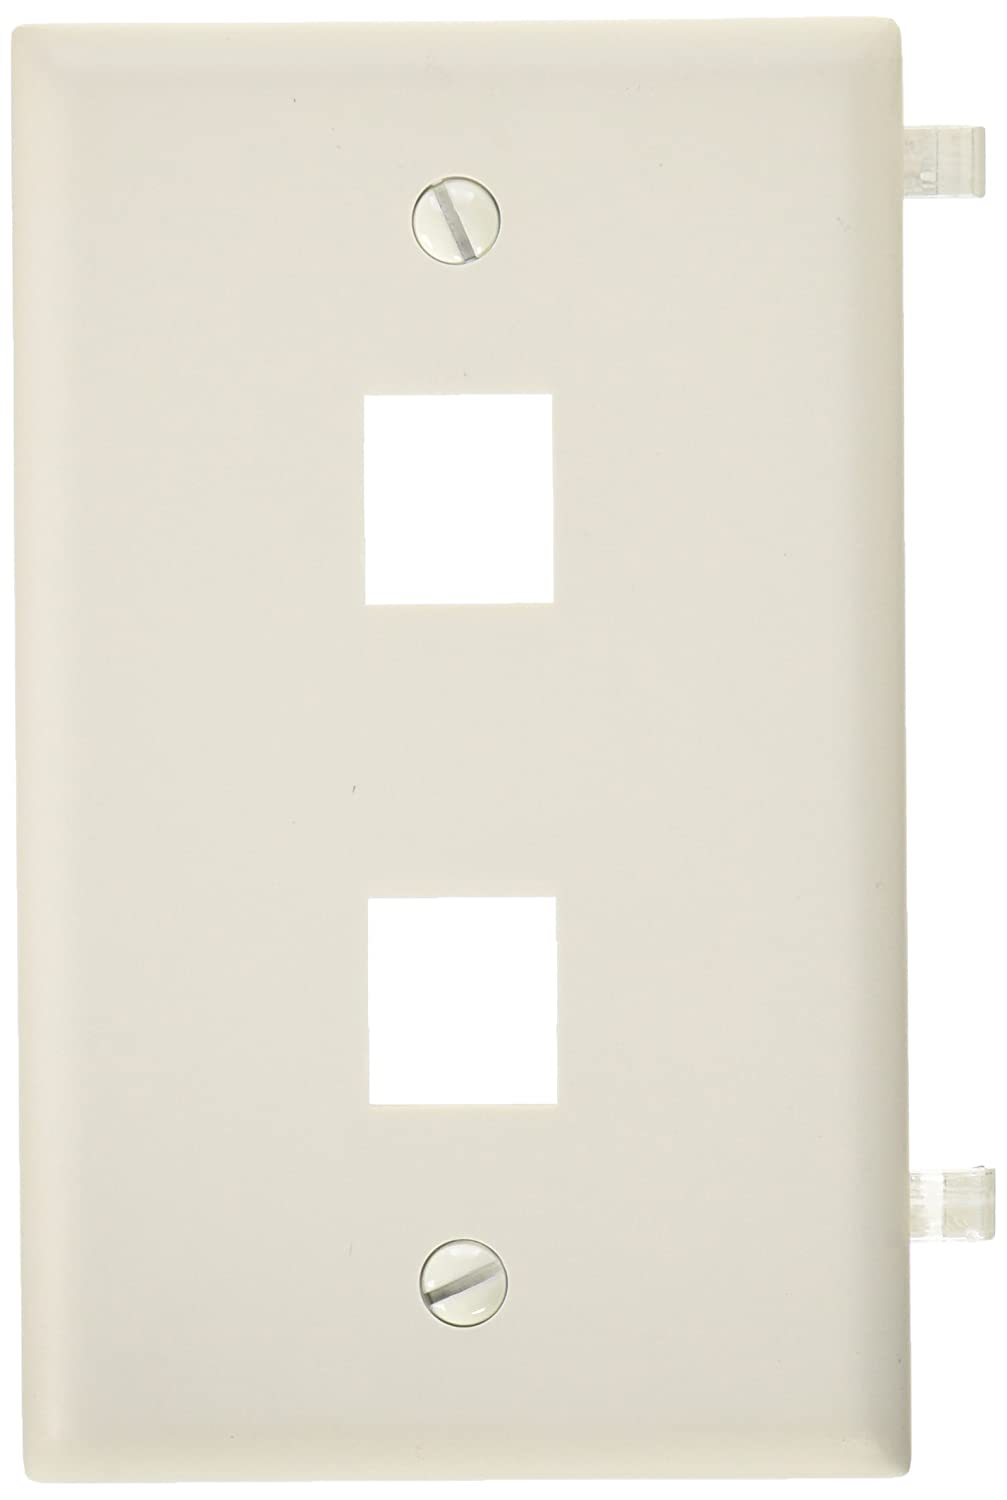 White Morris Products 6 Ports Morris 88170 DataComm Wall Plate for Keystone Jacks and Modular Inserts